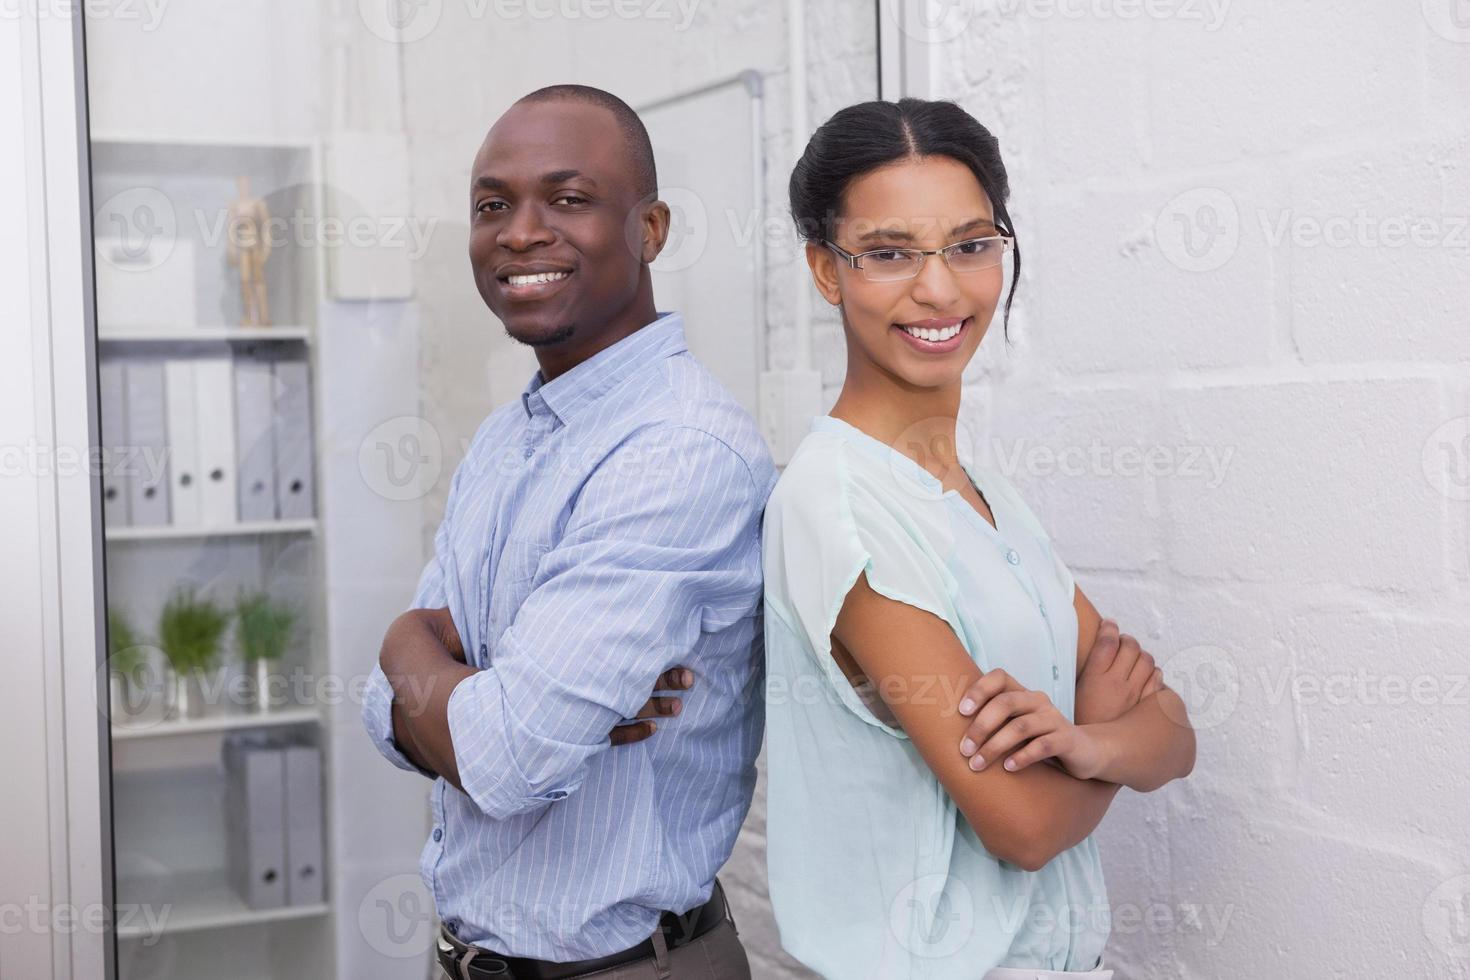 Smiling business people with arms folded photo